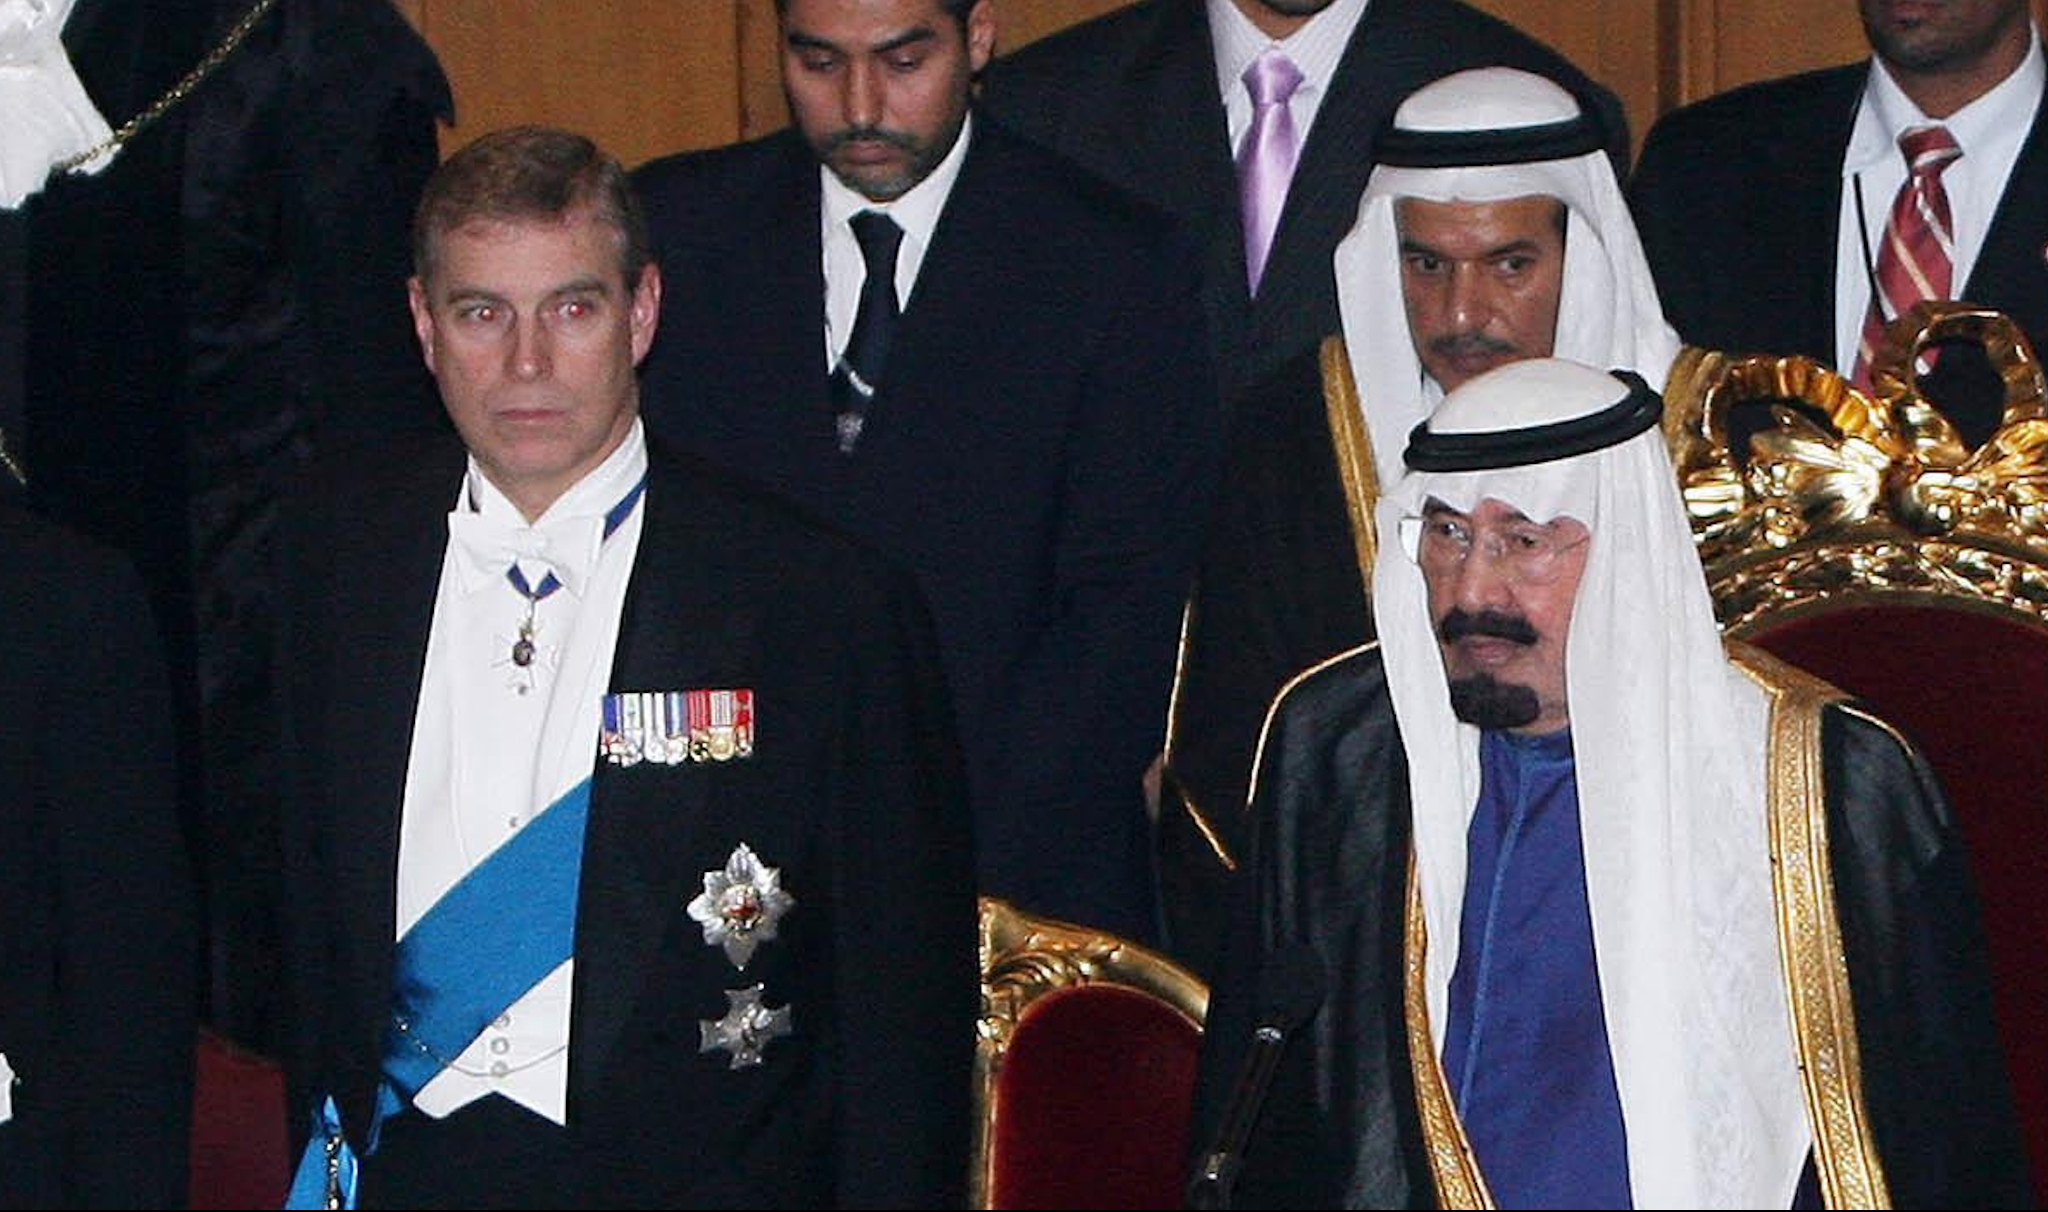 Prince Andrew rushed to Saudi Arabia after King Abdullah (right) lost his brother Nayef. (Photo: Getty)